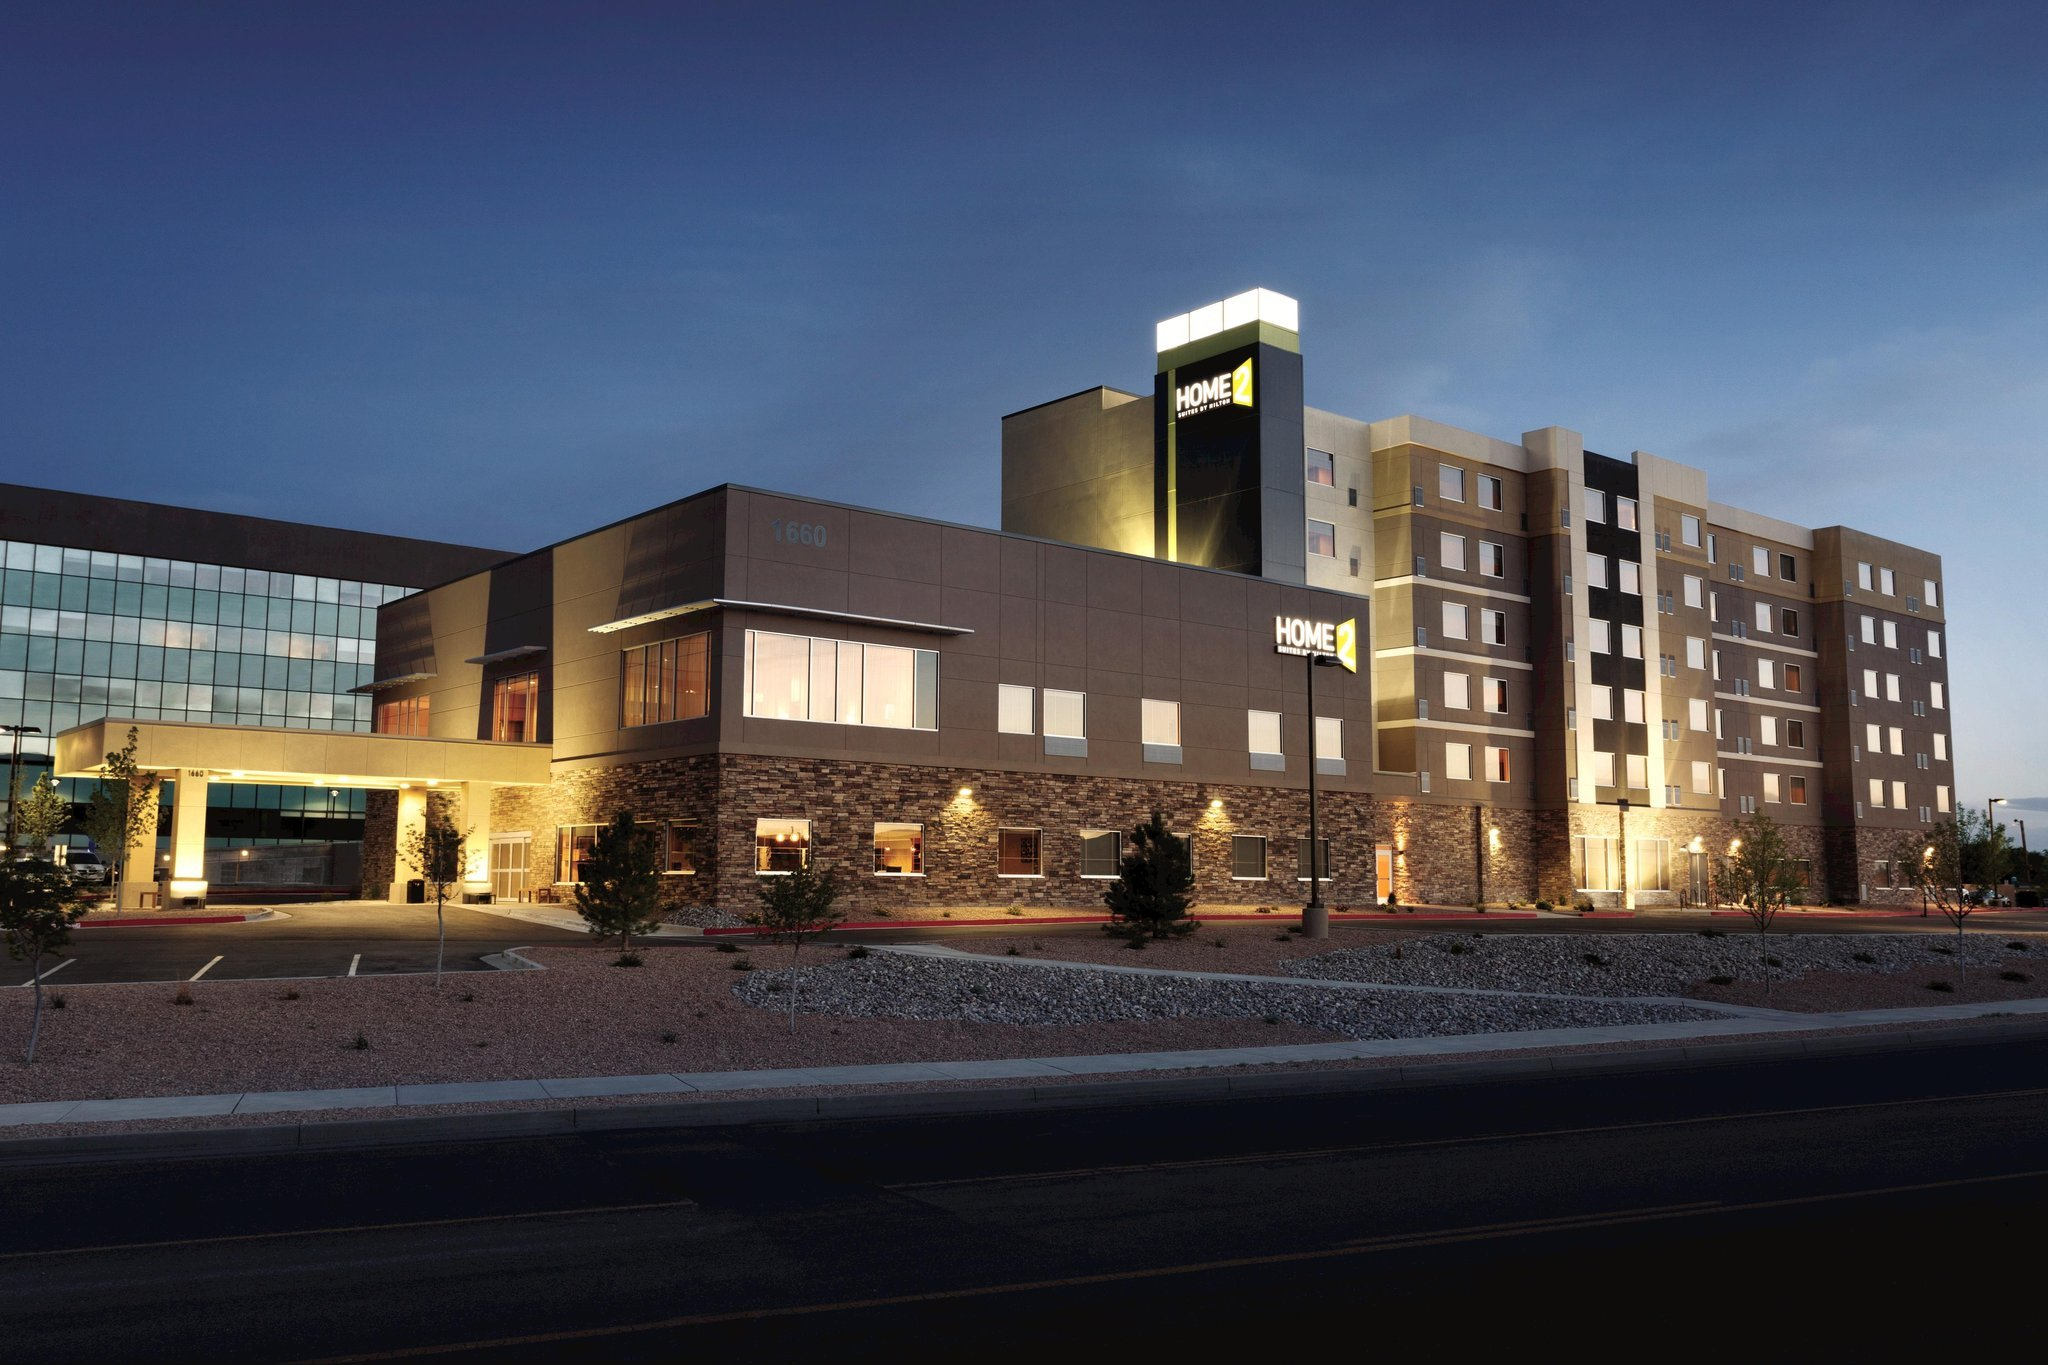 Home2 Suites by Hilton Albuquerque/Downtown-University